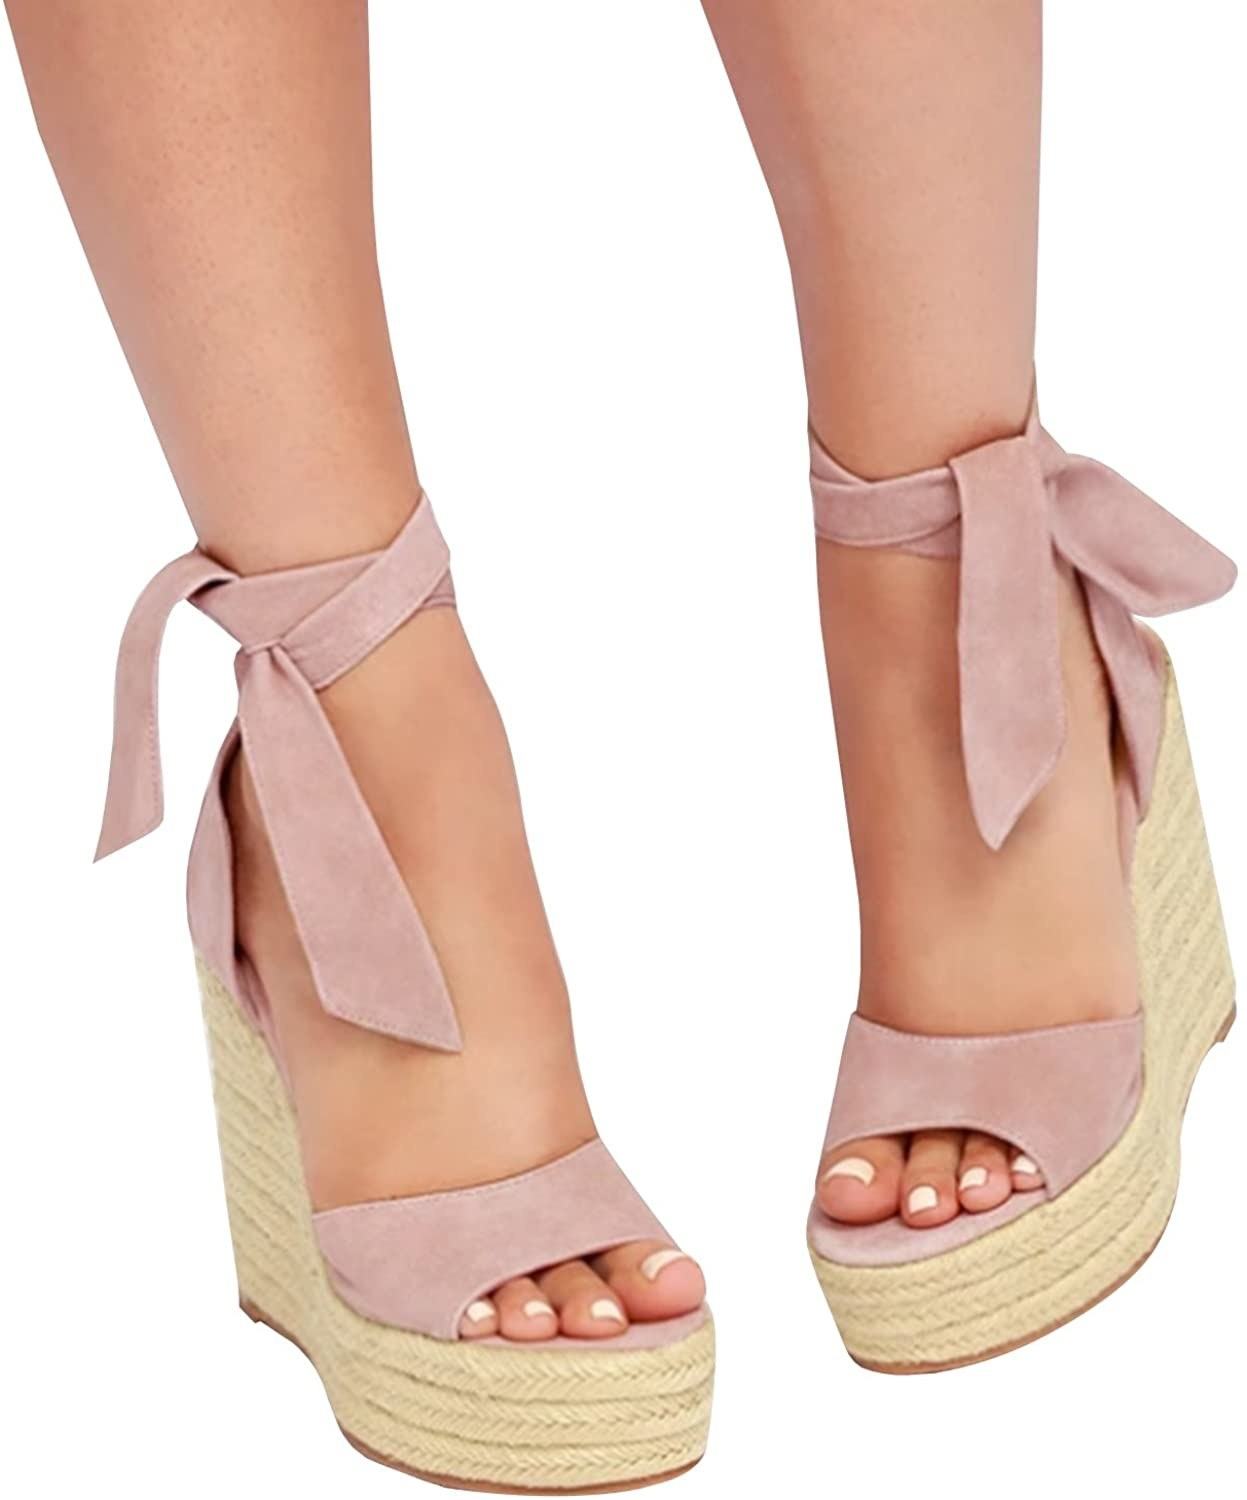 A model wearing the four-inch wedges in pink